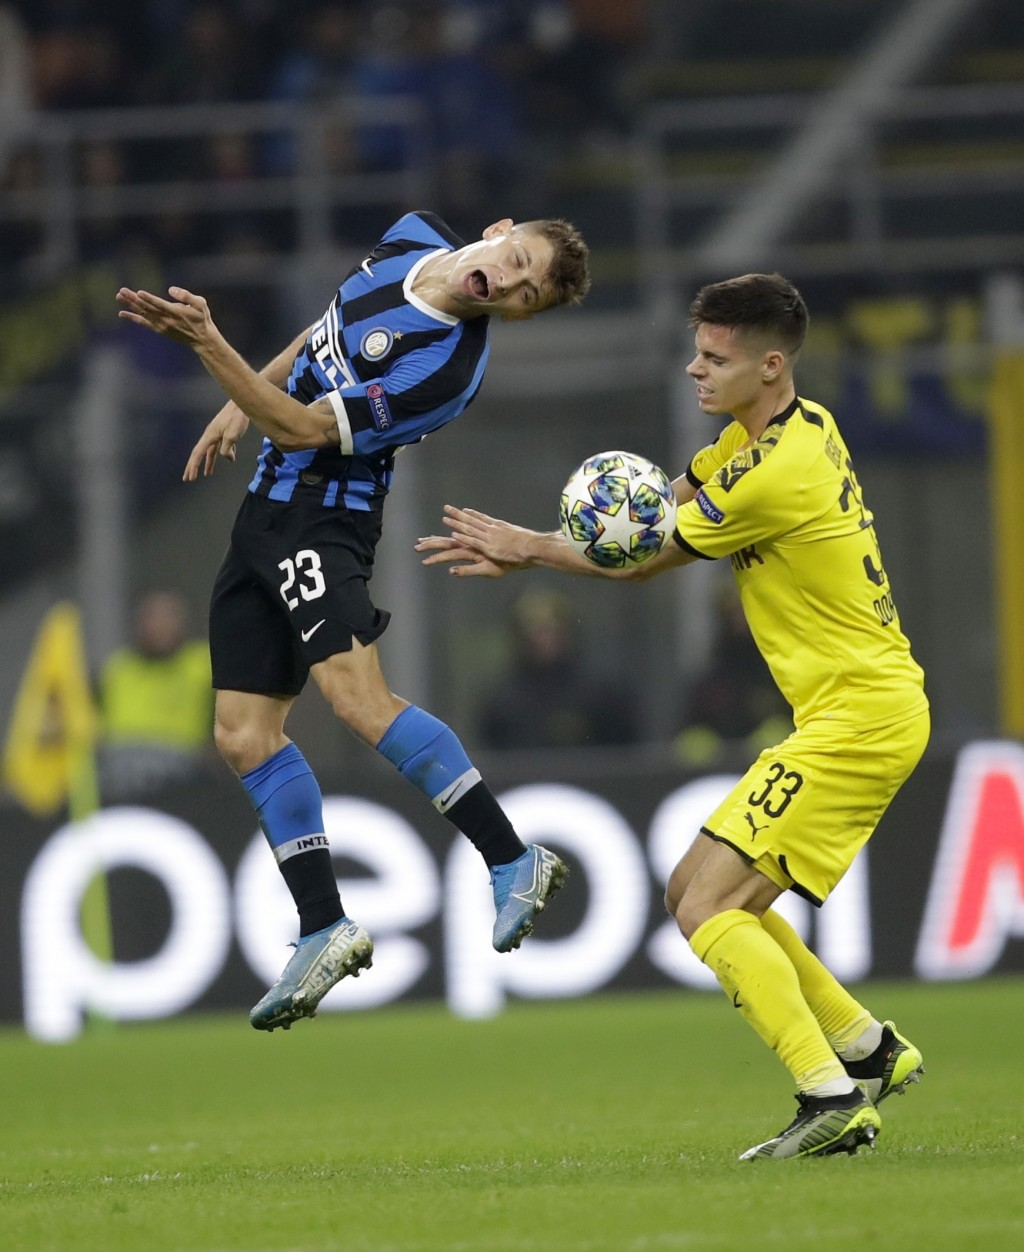 Inter Milan's Nicolo Barella, left, and Dortmund's Julian Weigl fight for the ball during the Champions League, Group F soccer match between Inter Mil...